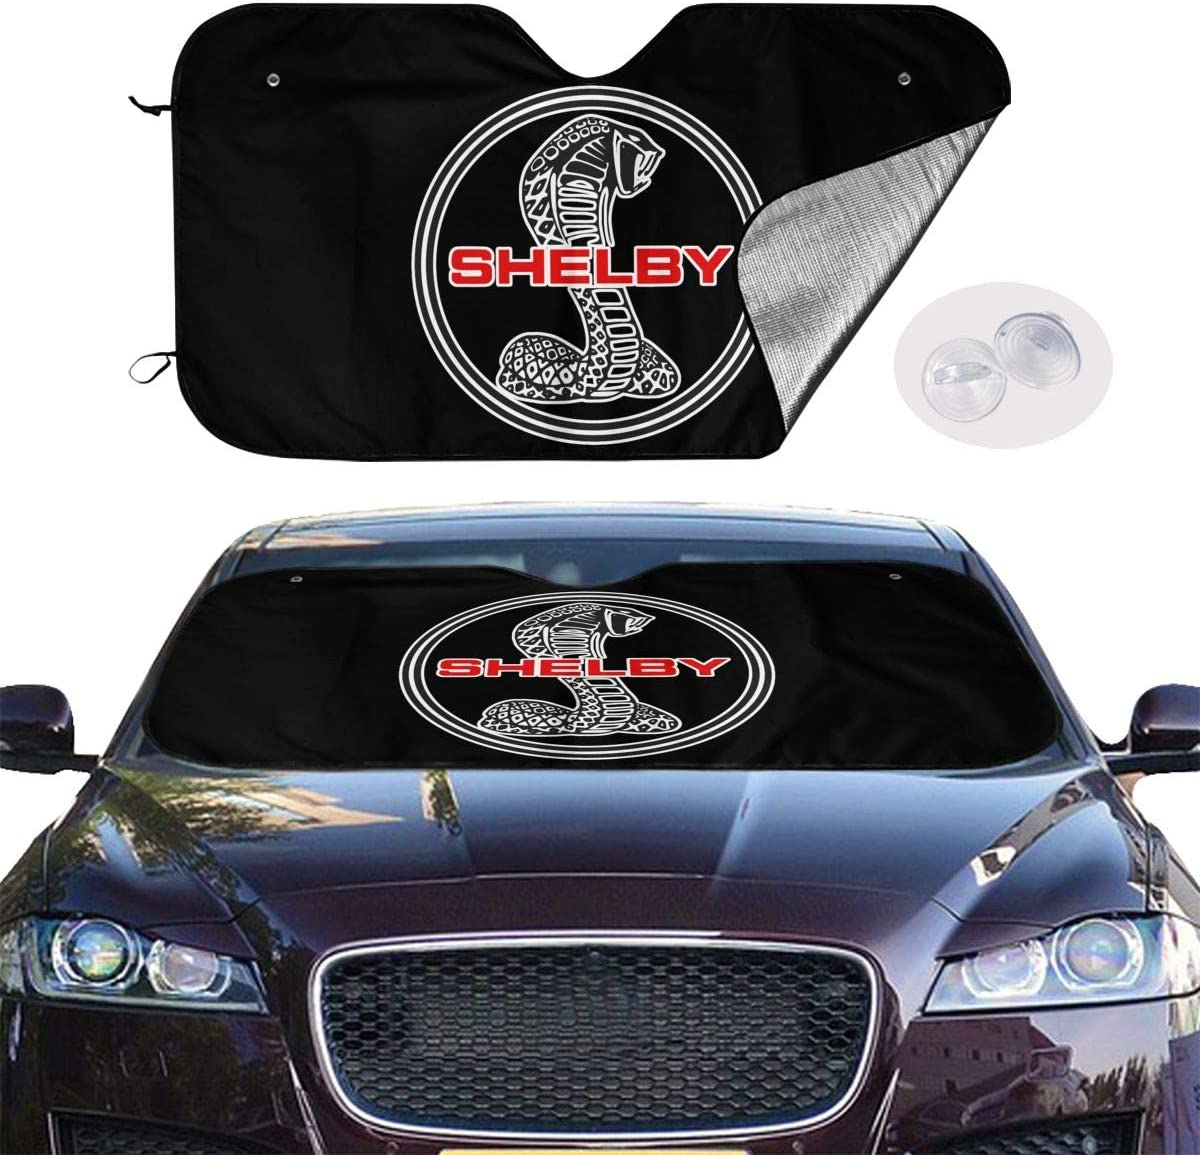 Keeps Your Vehicle Cool for Car Truck SUV CIWO Cks Ford Mustang SVT Cobra Shelby Automotive Windshield Sun Shade